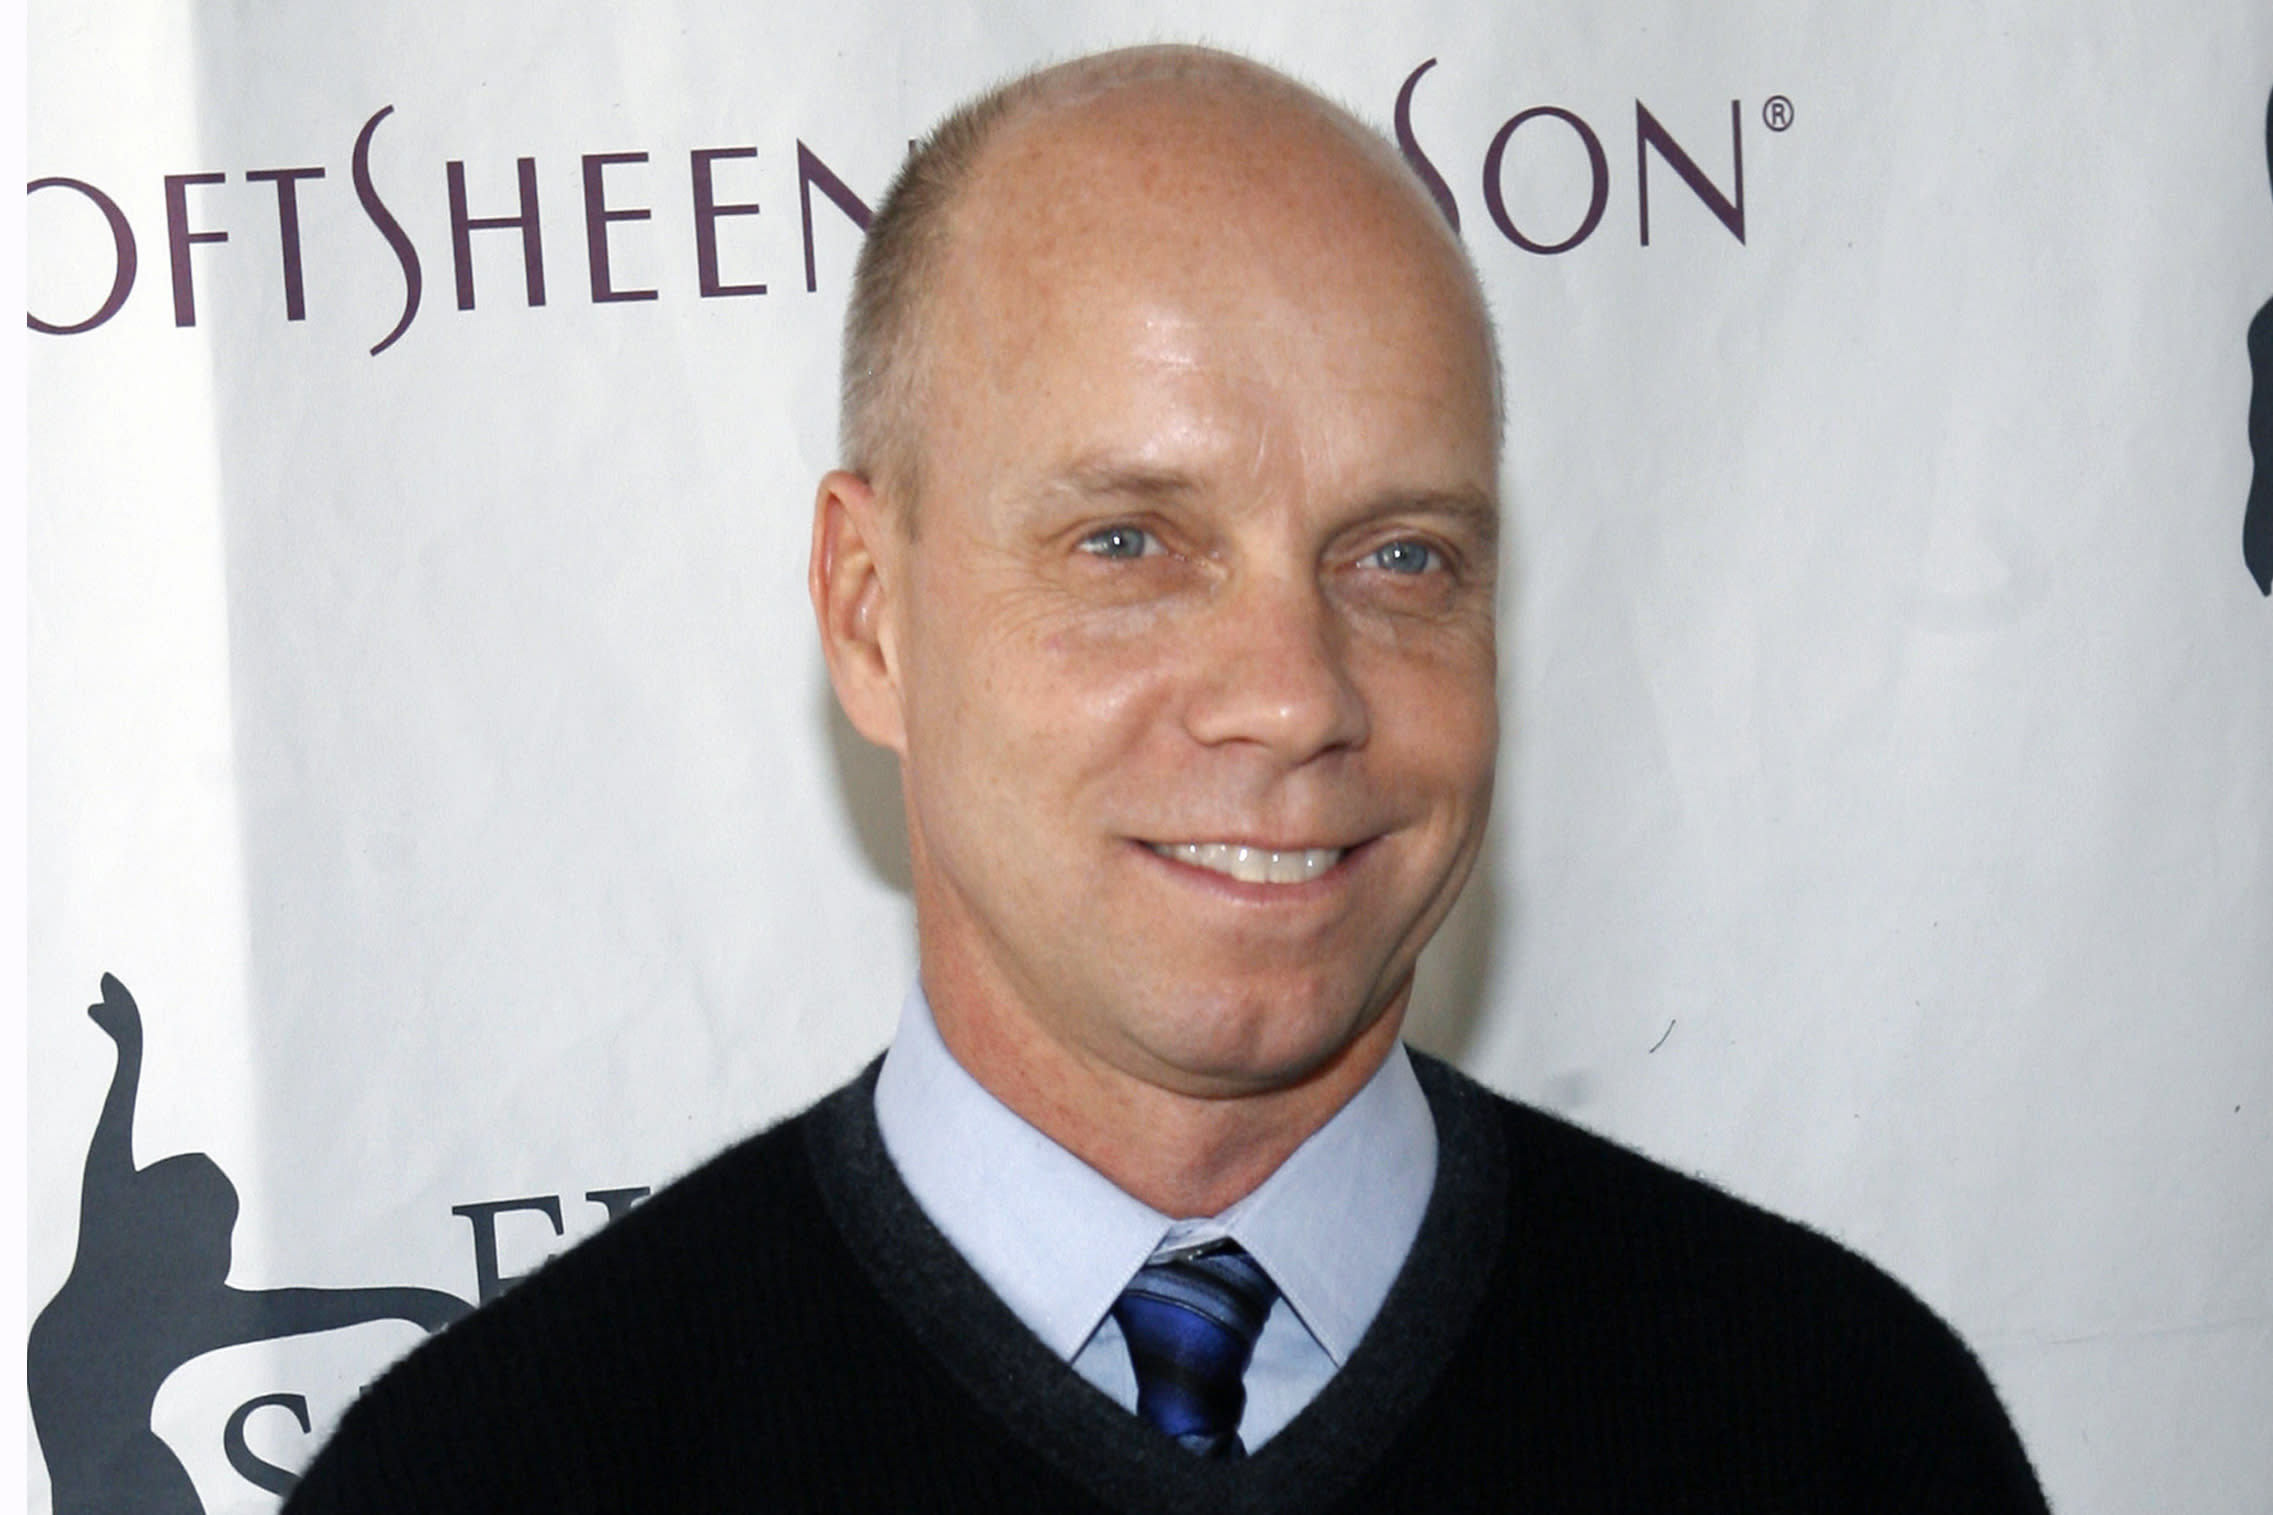 """FILE - In this April 9, 2007 file photo, former Olympic figure skating gold medalist Scott Hamilton arrives for Figure Skating In Harlem's annual gala """"Skating with the Stars"""" at Central Park's Wollman Rink in New York. Scott Hamilton gets goosebumps at the mention of Lake Placid. Forty years later, Hamilton will be among an array of athletes returning to celebrate the Olympics of the """"Miracle on Ice"""" — when the U.S. hockey team upset the mighty Soviet Union — as well as Eric Heiden's five speedskating gold medals, all in record time and outside in the elements. (AP Photo/Jason DeCrow, File)"""